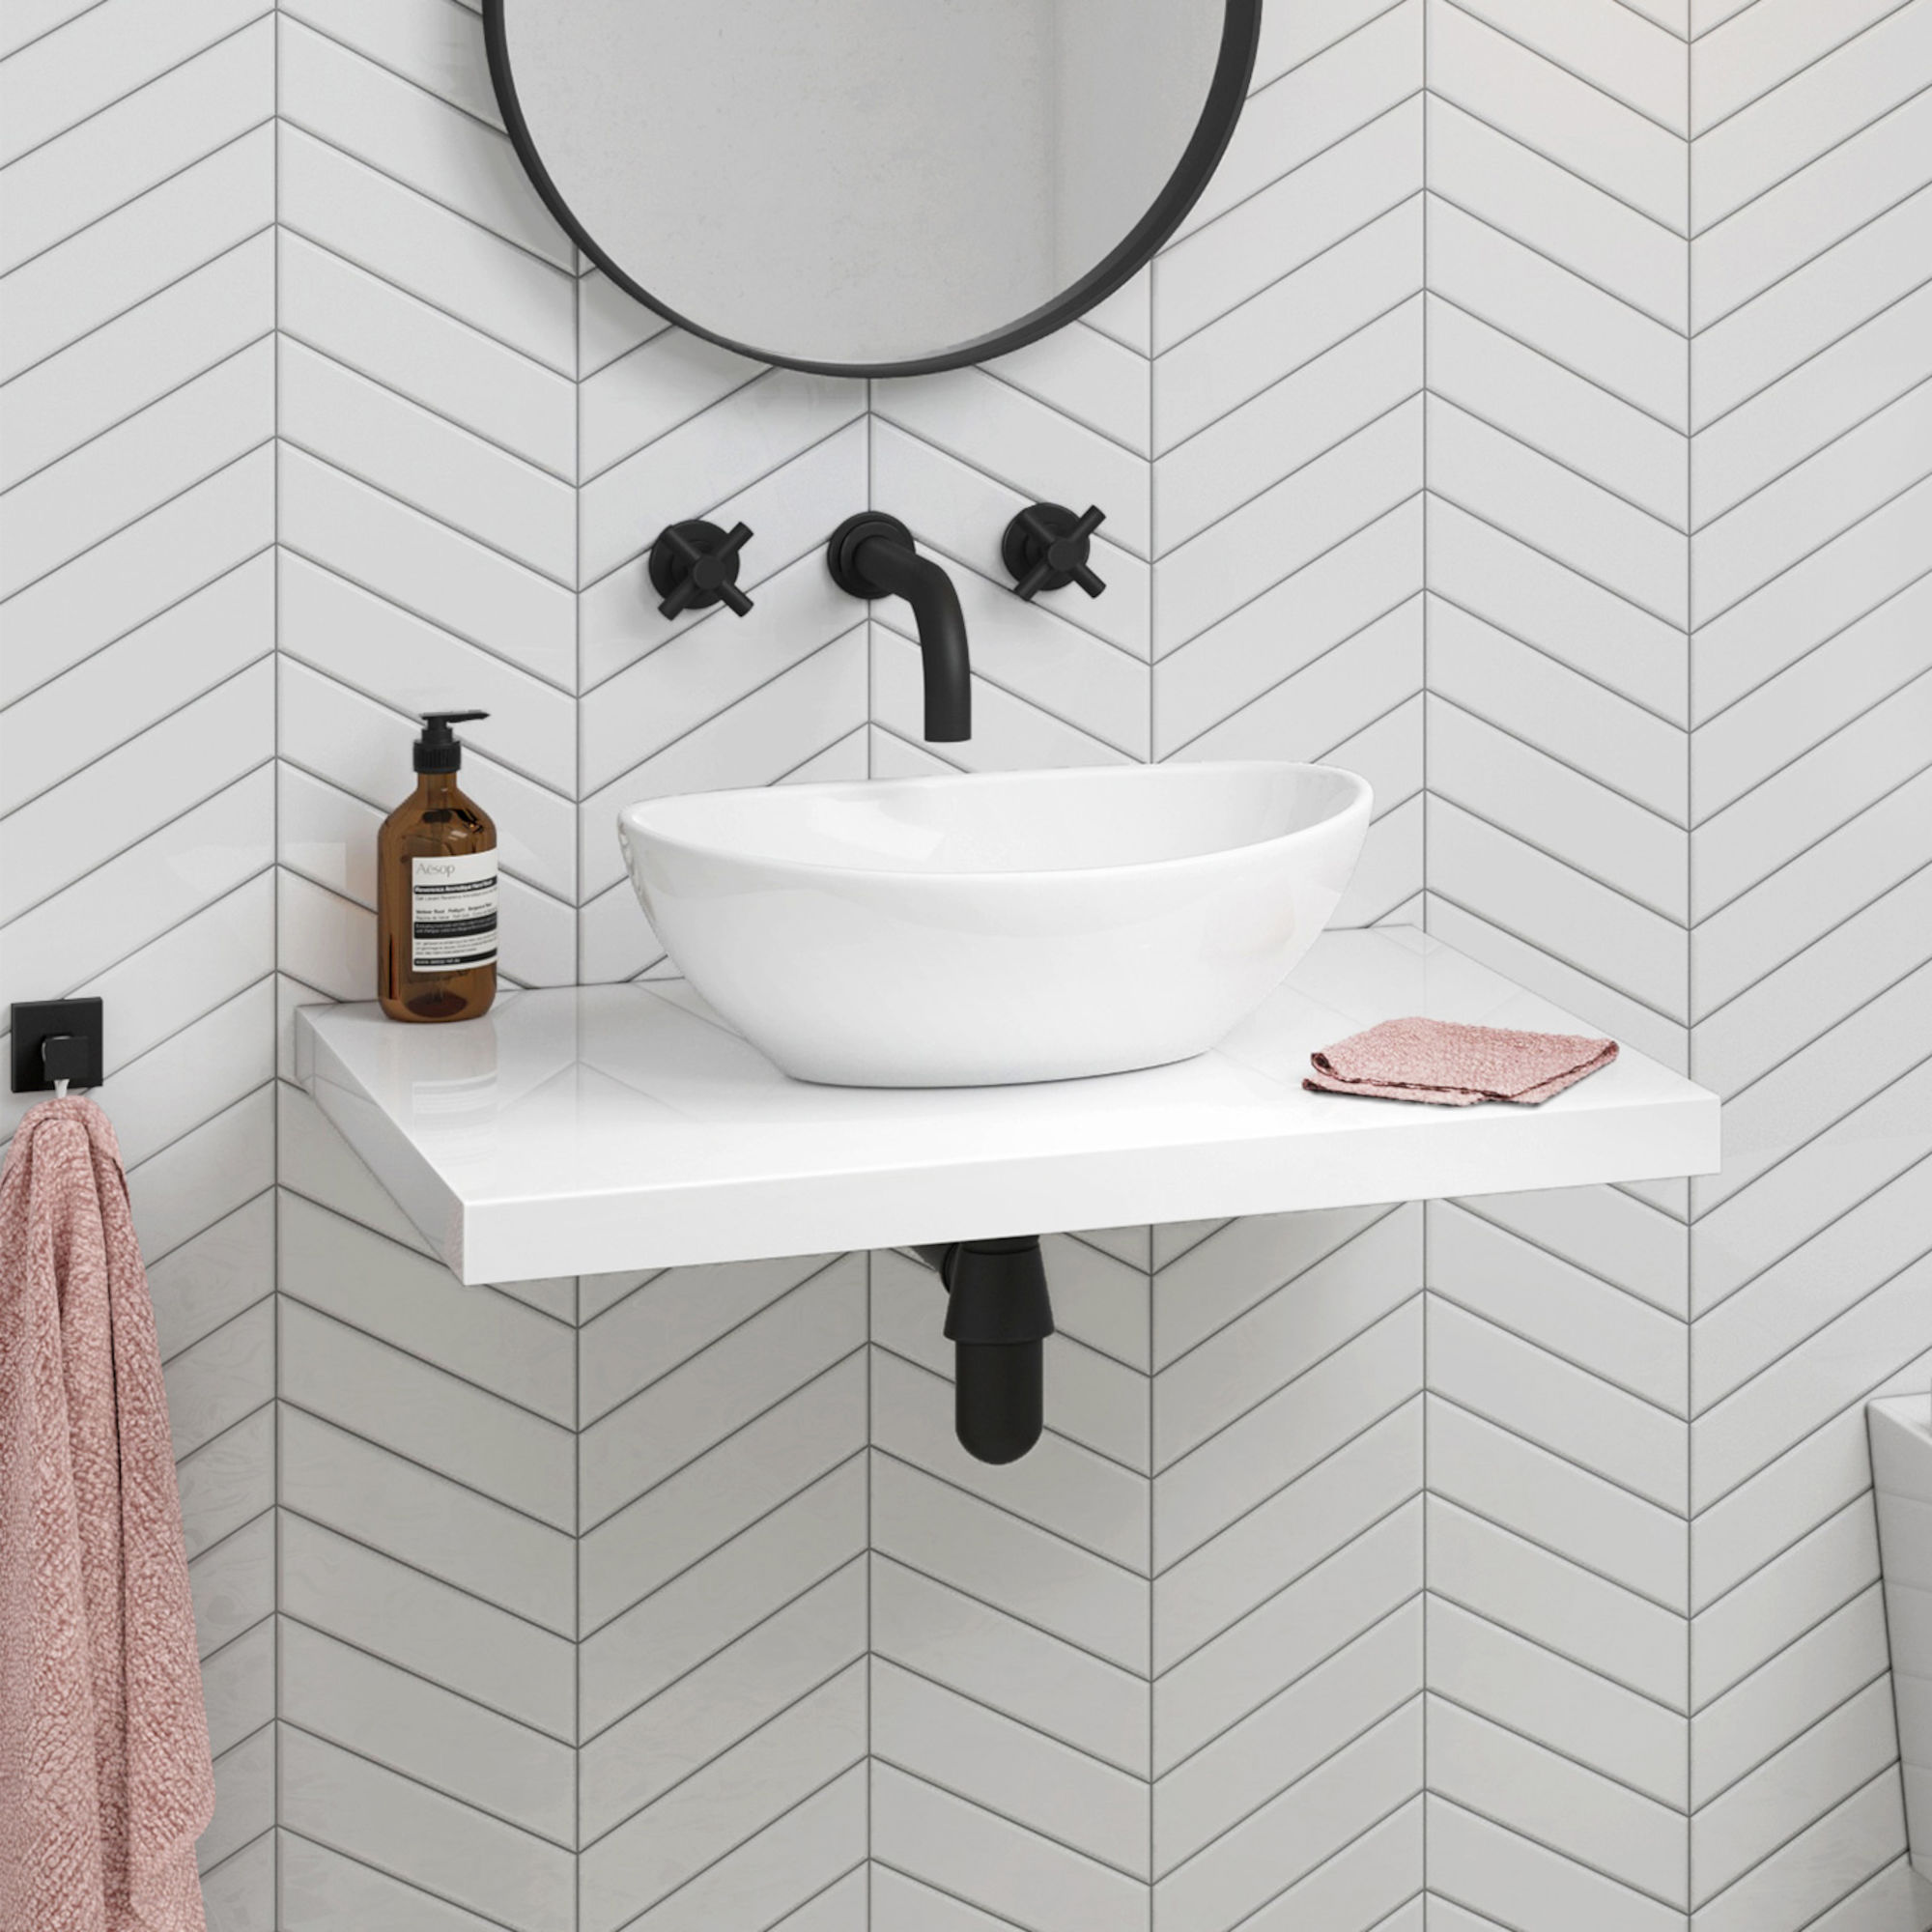 our new floating bathroom sinks for contemporary soak fscamhgw shelf countertop basin gloss white wall hung camila wooden mounted designs rustic ledge work shelving ideas small